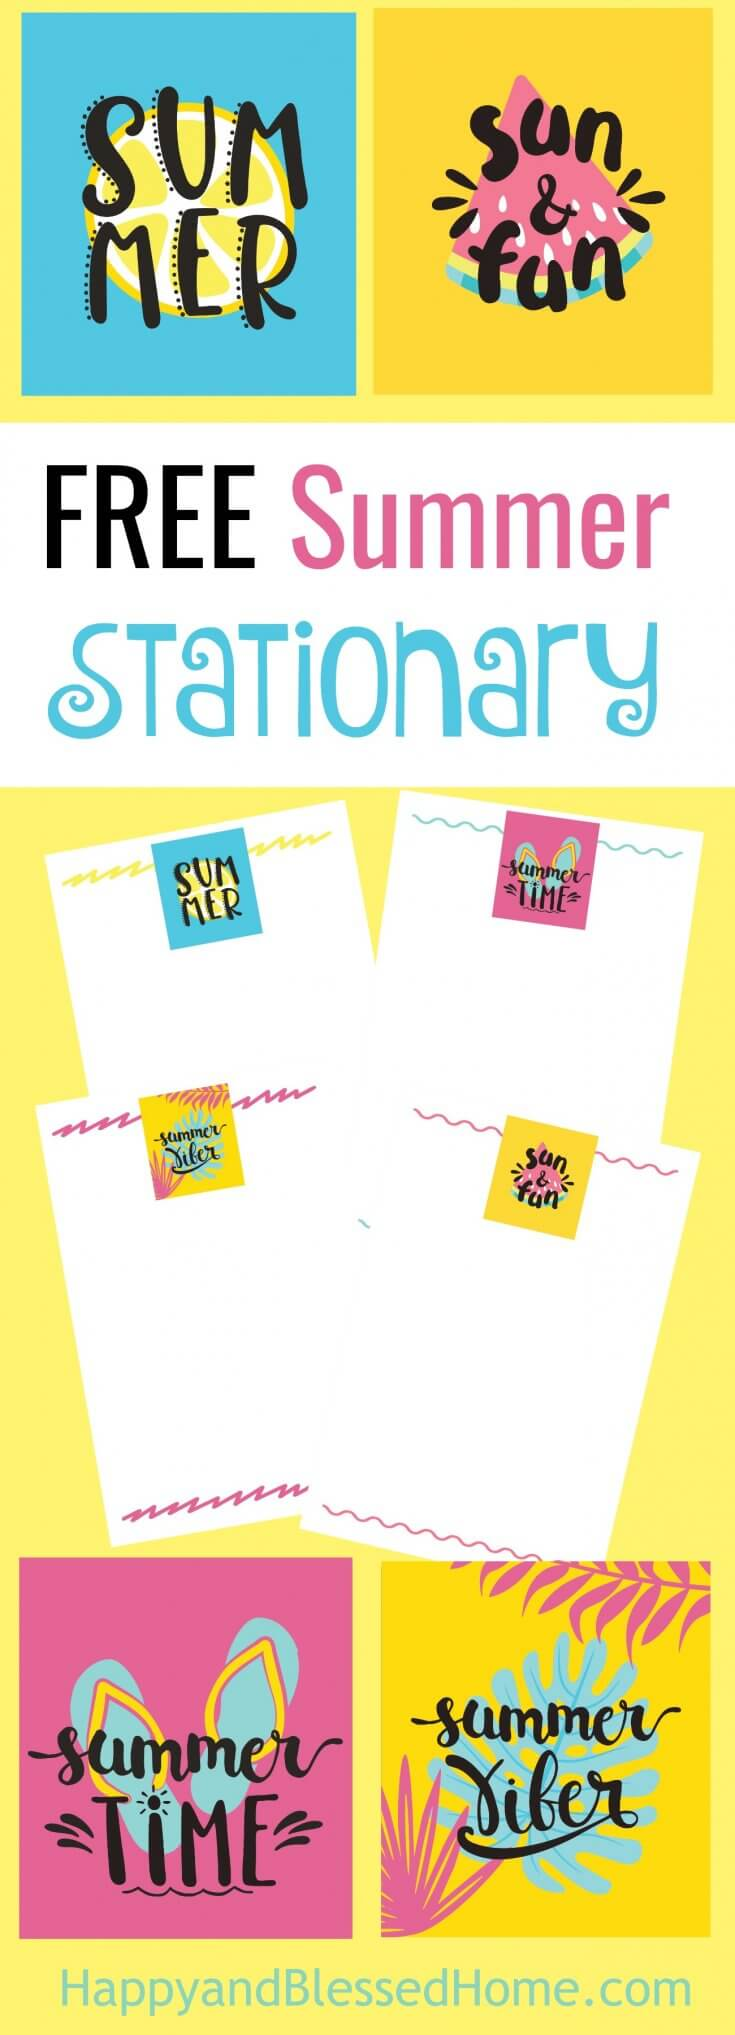 FREE Summer Stationary - 4 Desogns - Perfect for Journaling and Capturing Summer Memories